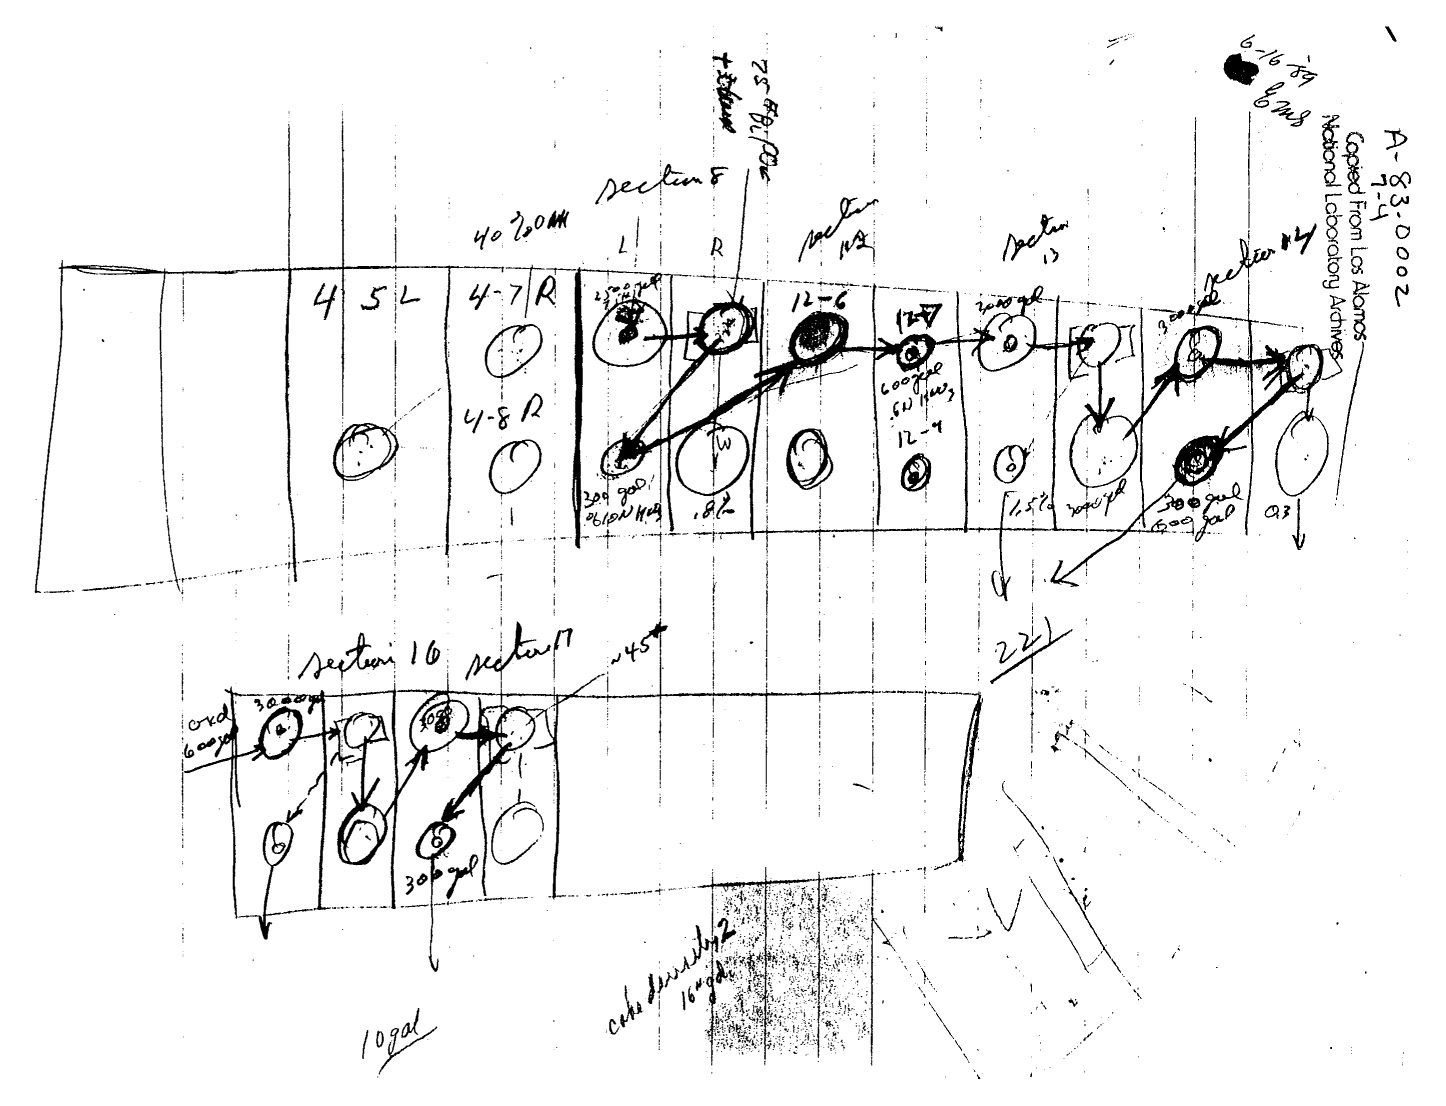 Feynman's diagrammatic sketch of storage of barrels of uranium at oak ridge prepared for his